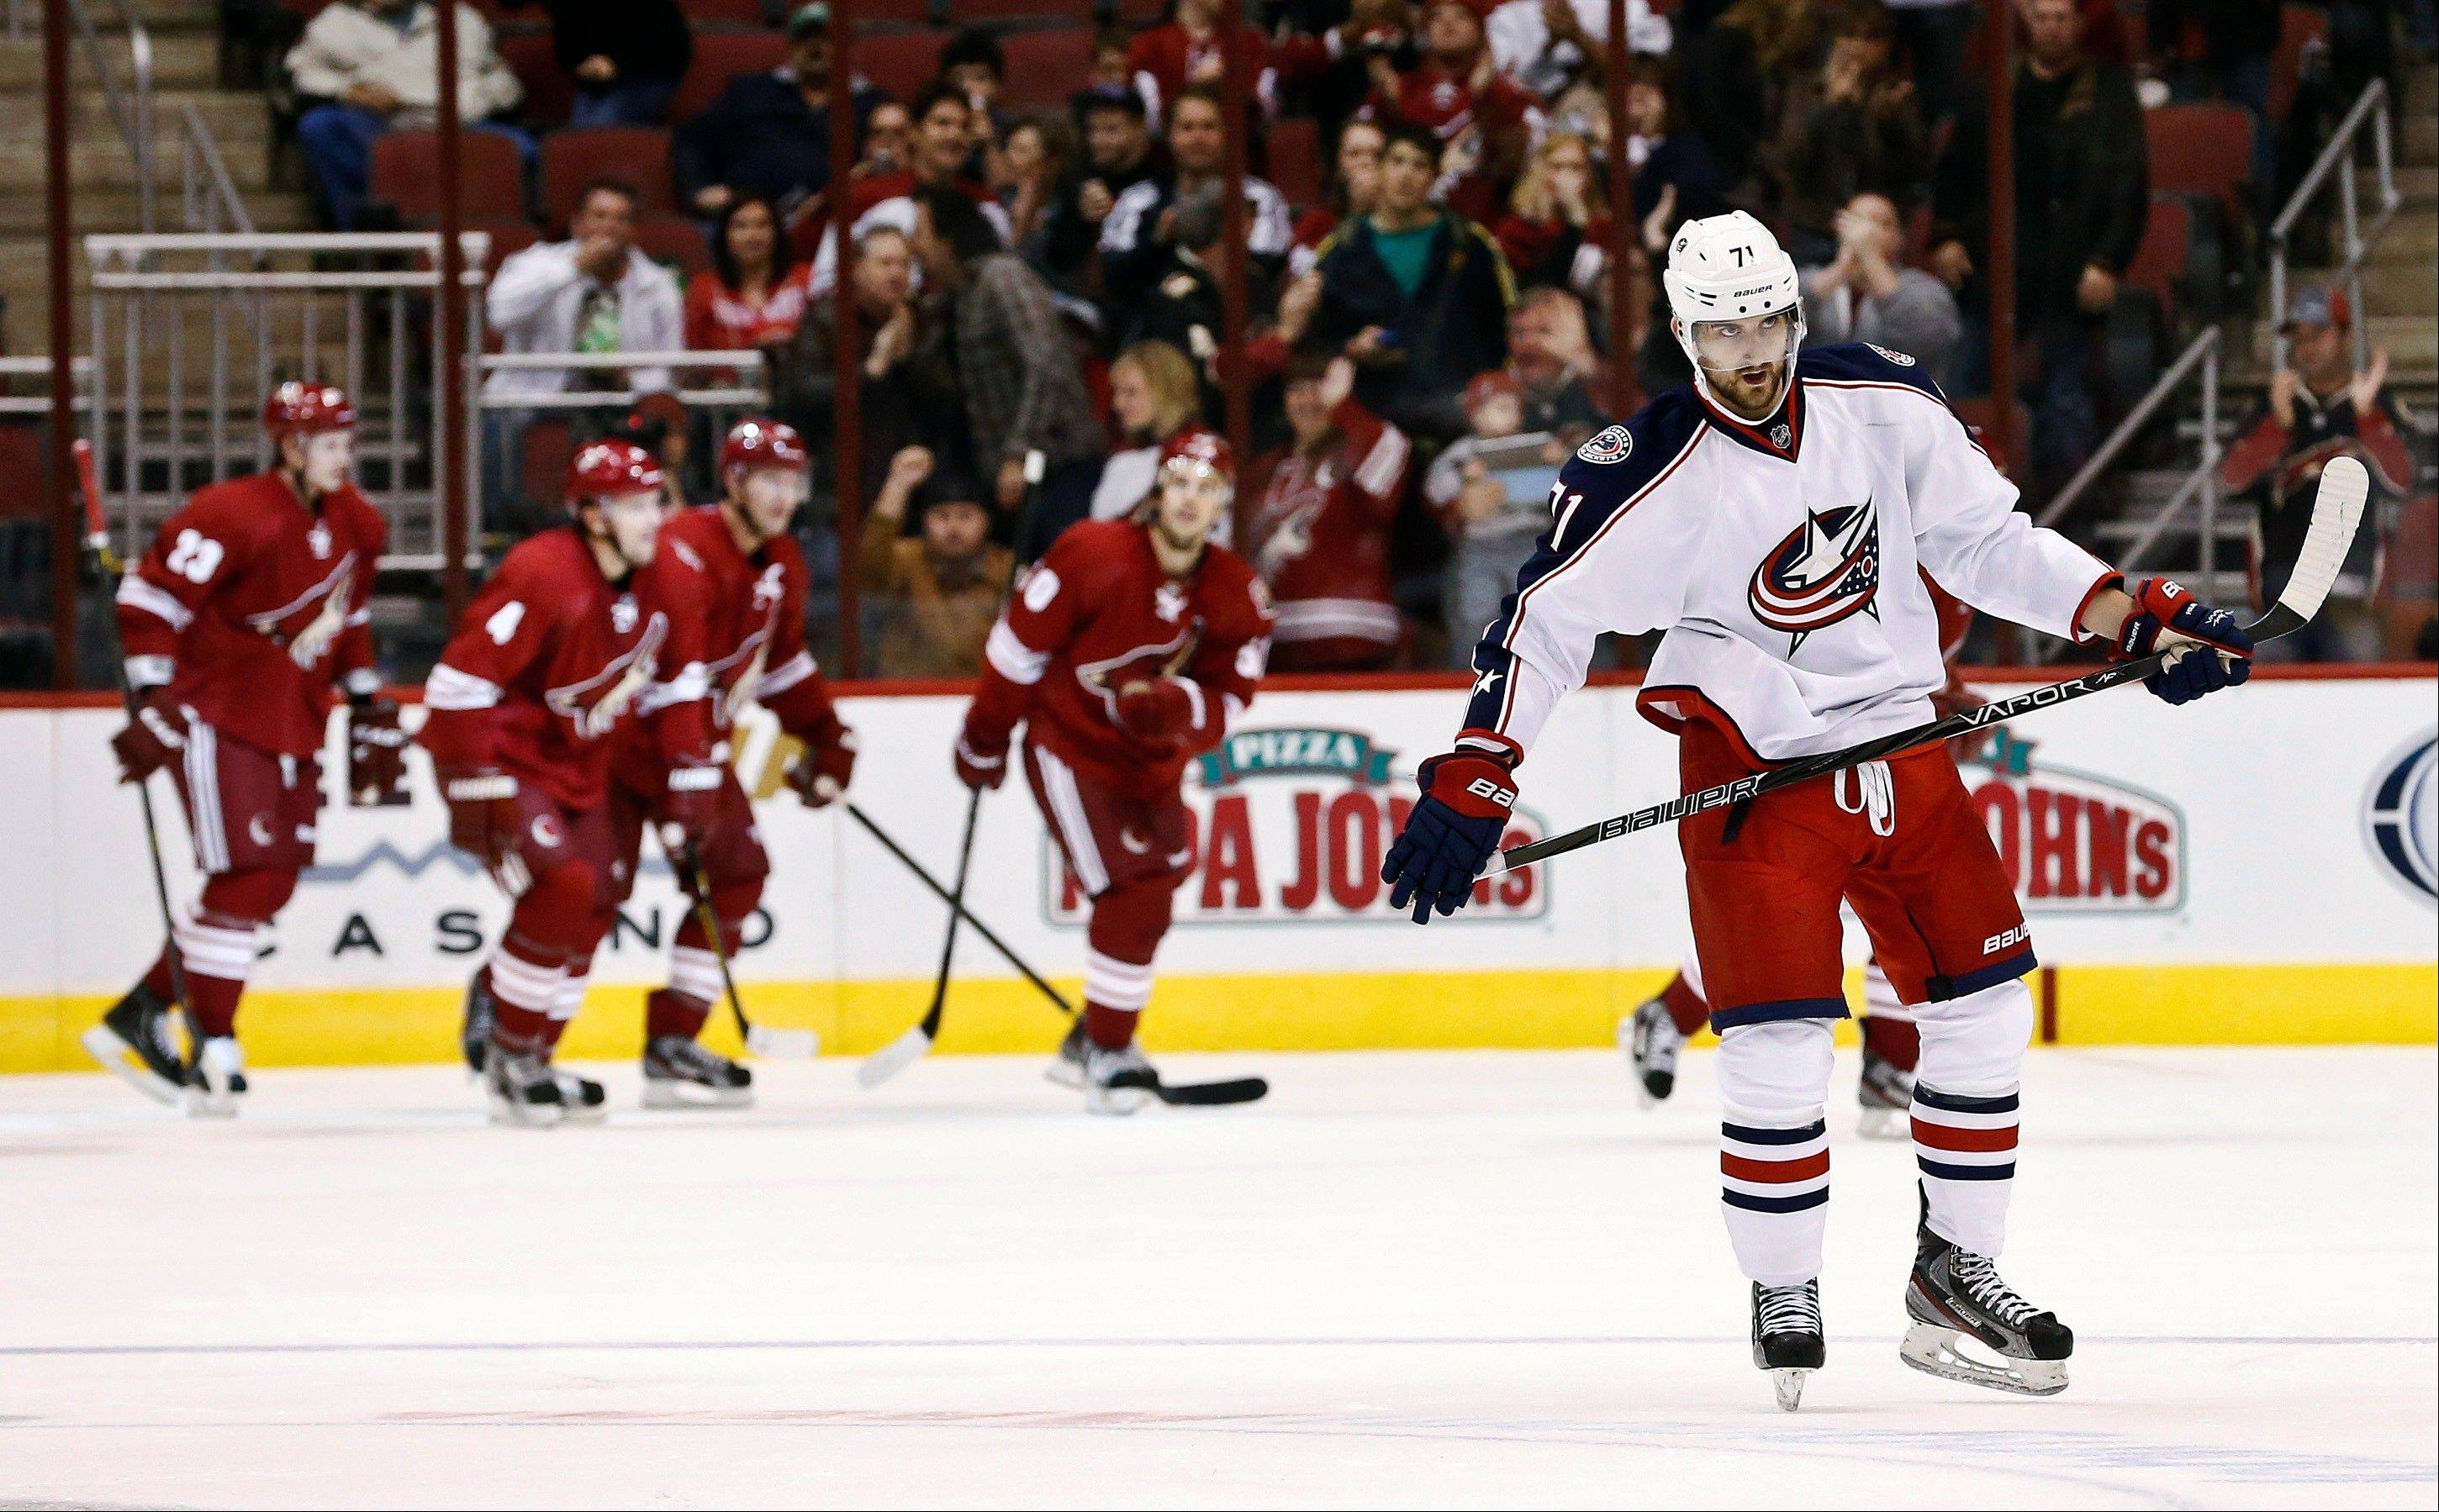 Columbus Blue Jackets� Nick Foligno, right, skates away as the Phoenix Coyotes celebrate a goal by Steve Sullivan during the second period in an NHL hockey game, Wednesday, Jan. 23, 2013, in Glendale, Ariz.